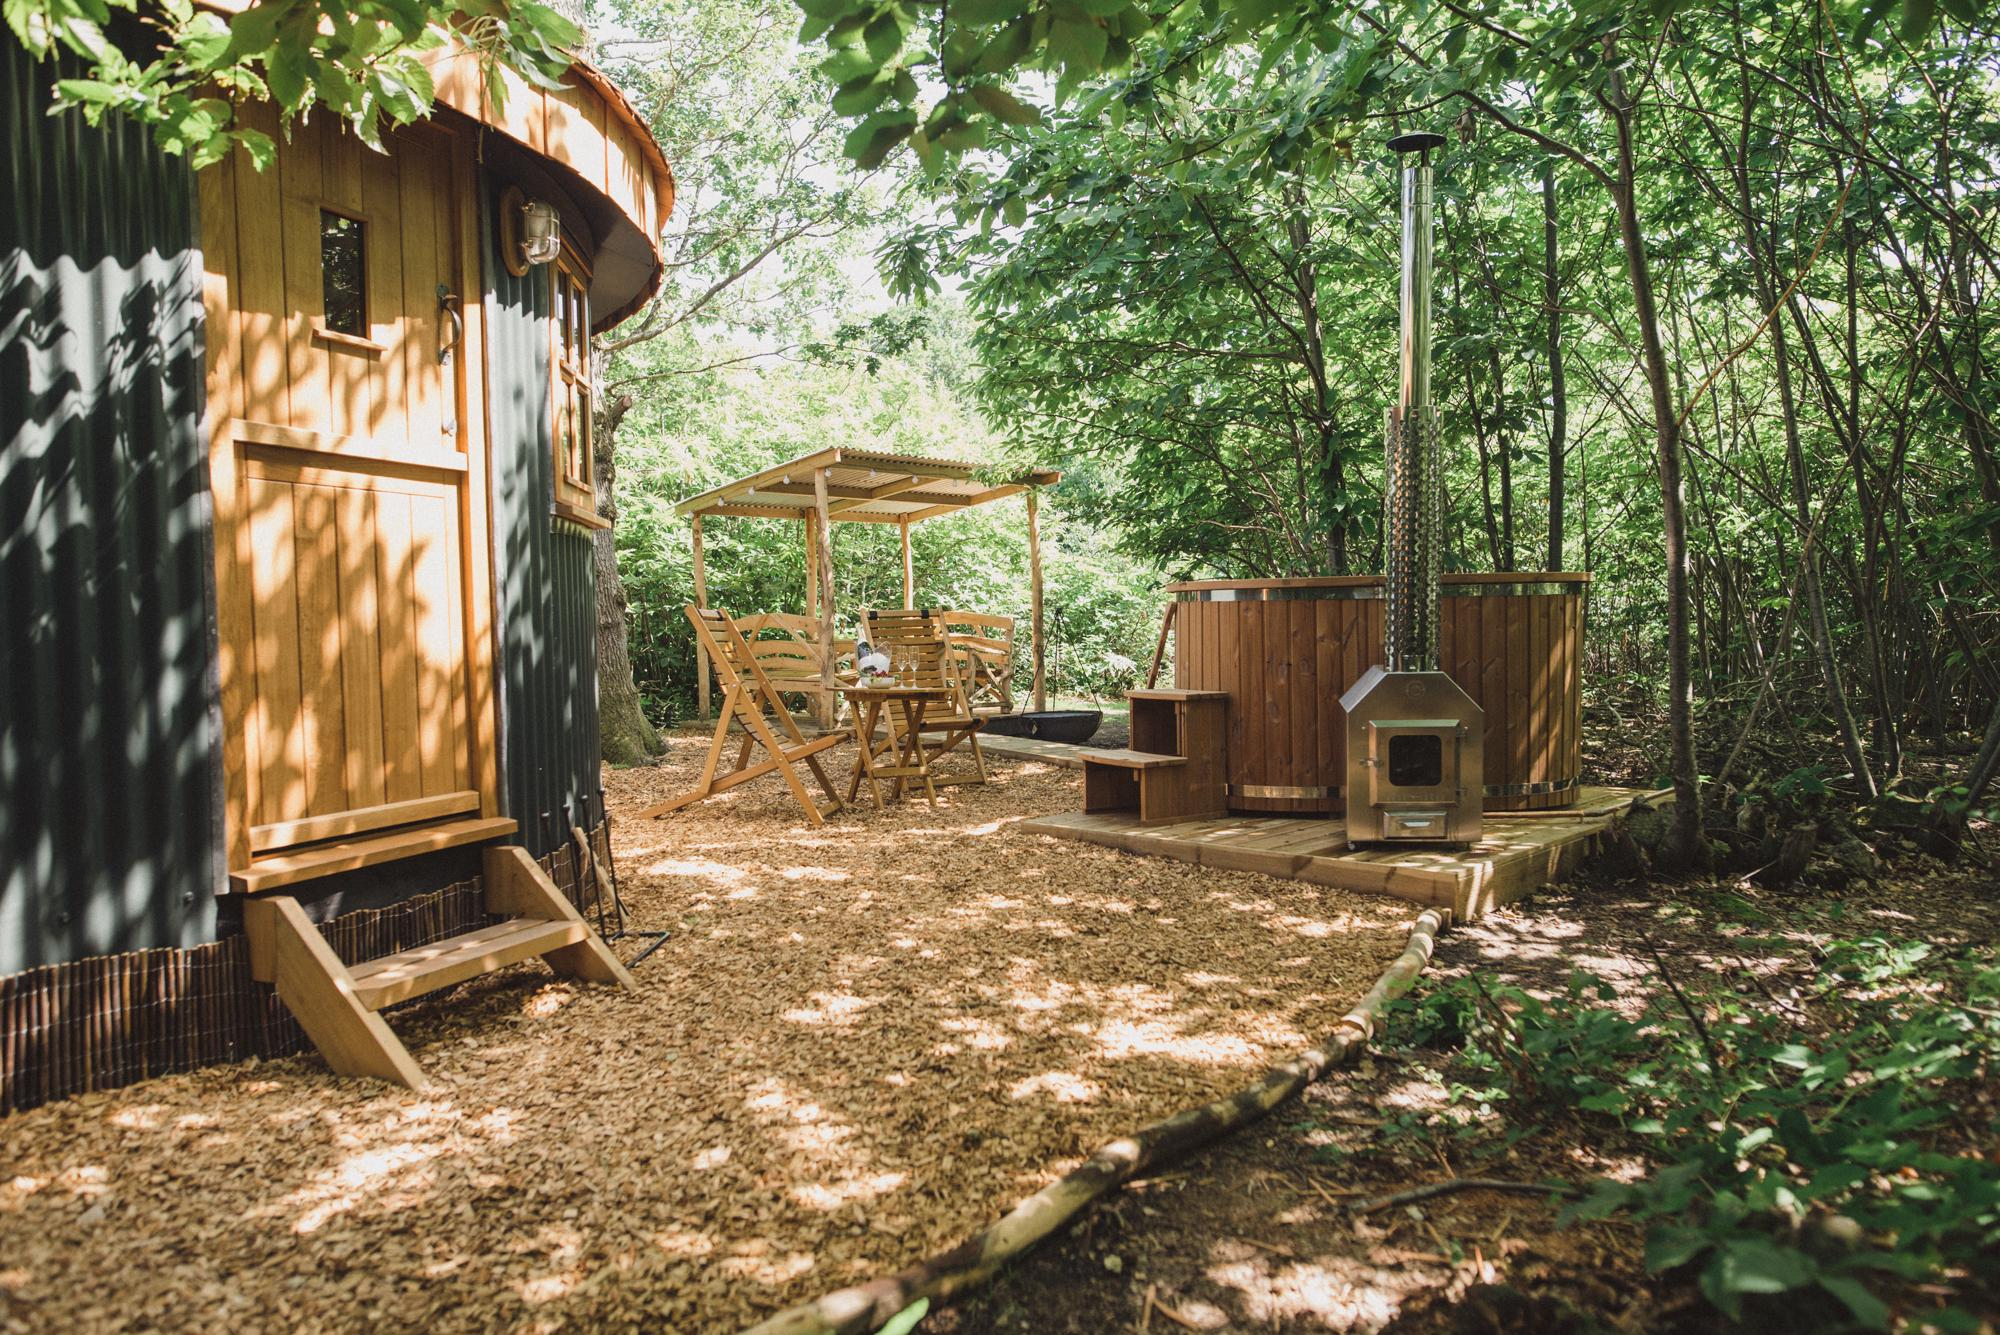 Campsites in Rye holidays at Cool Places